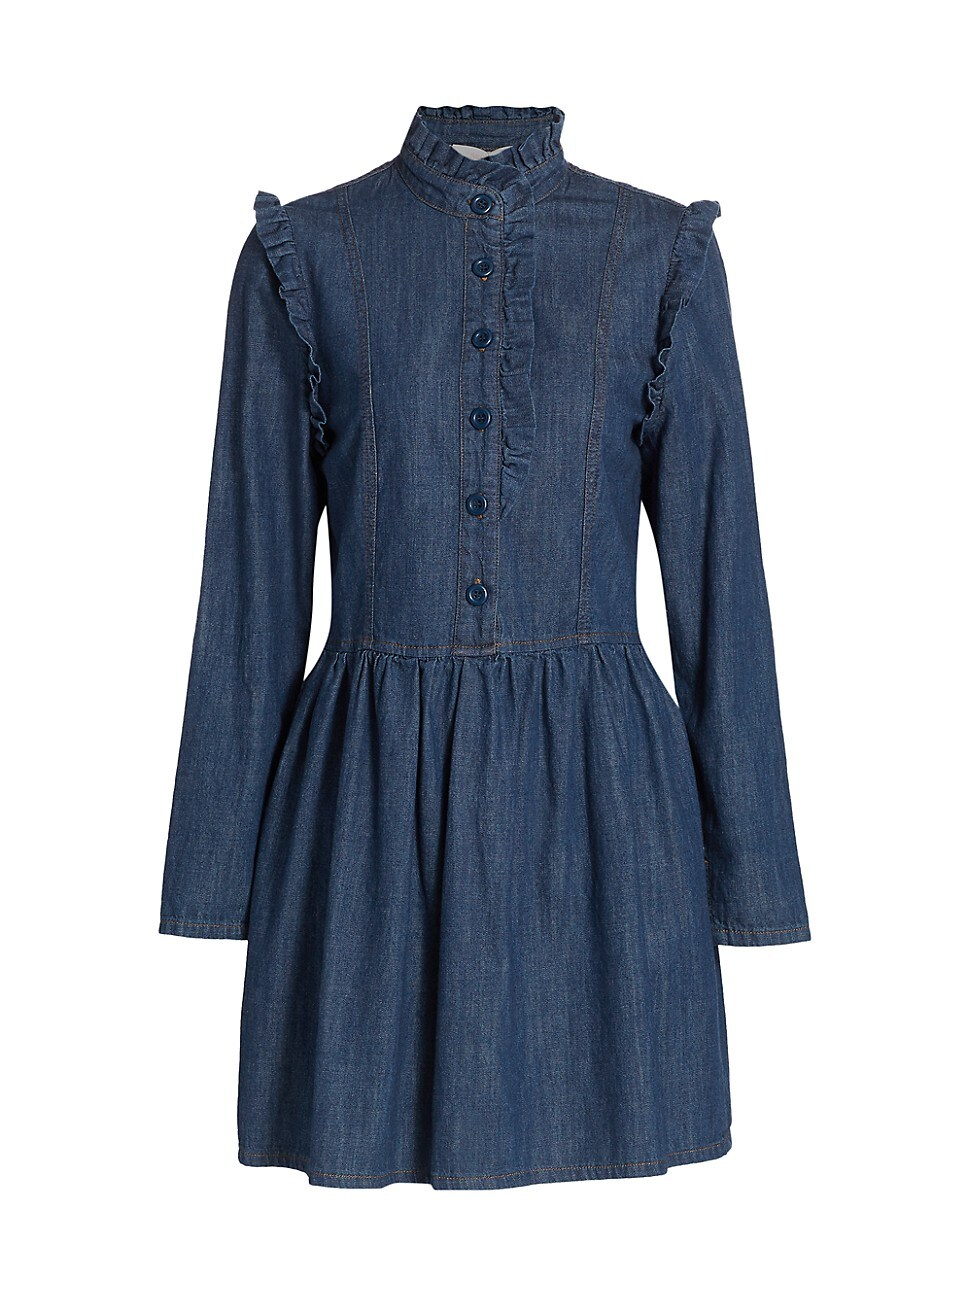 See By Chloé WOMEN'S FLOU DENIM MINI SHIRTDRESS